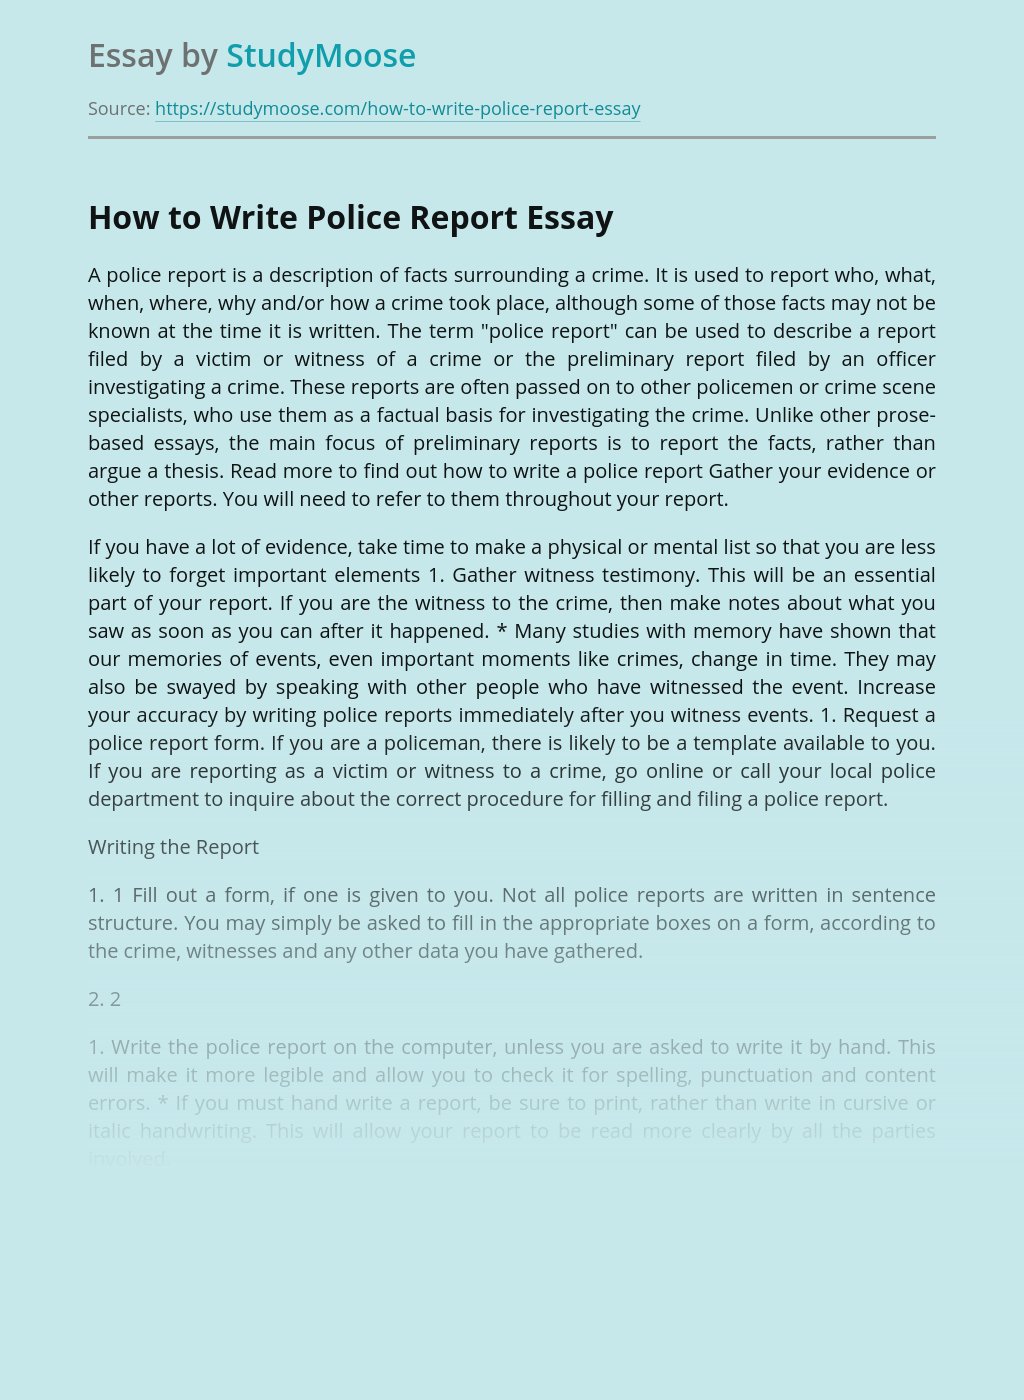 How to Write Police Report